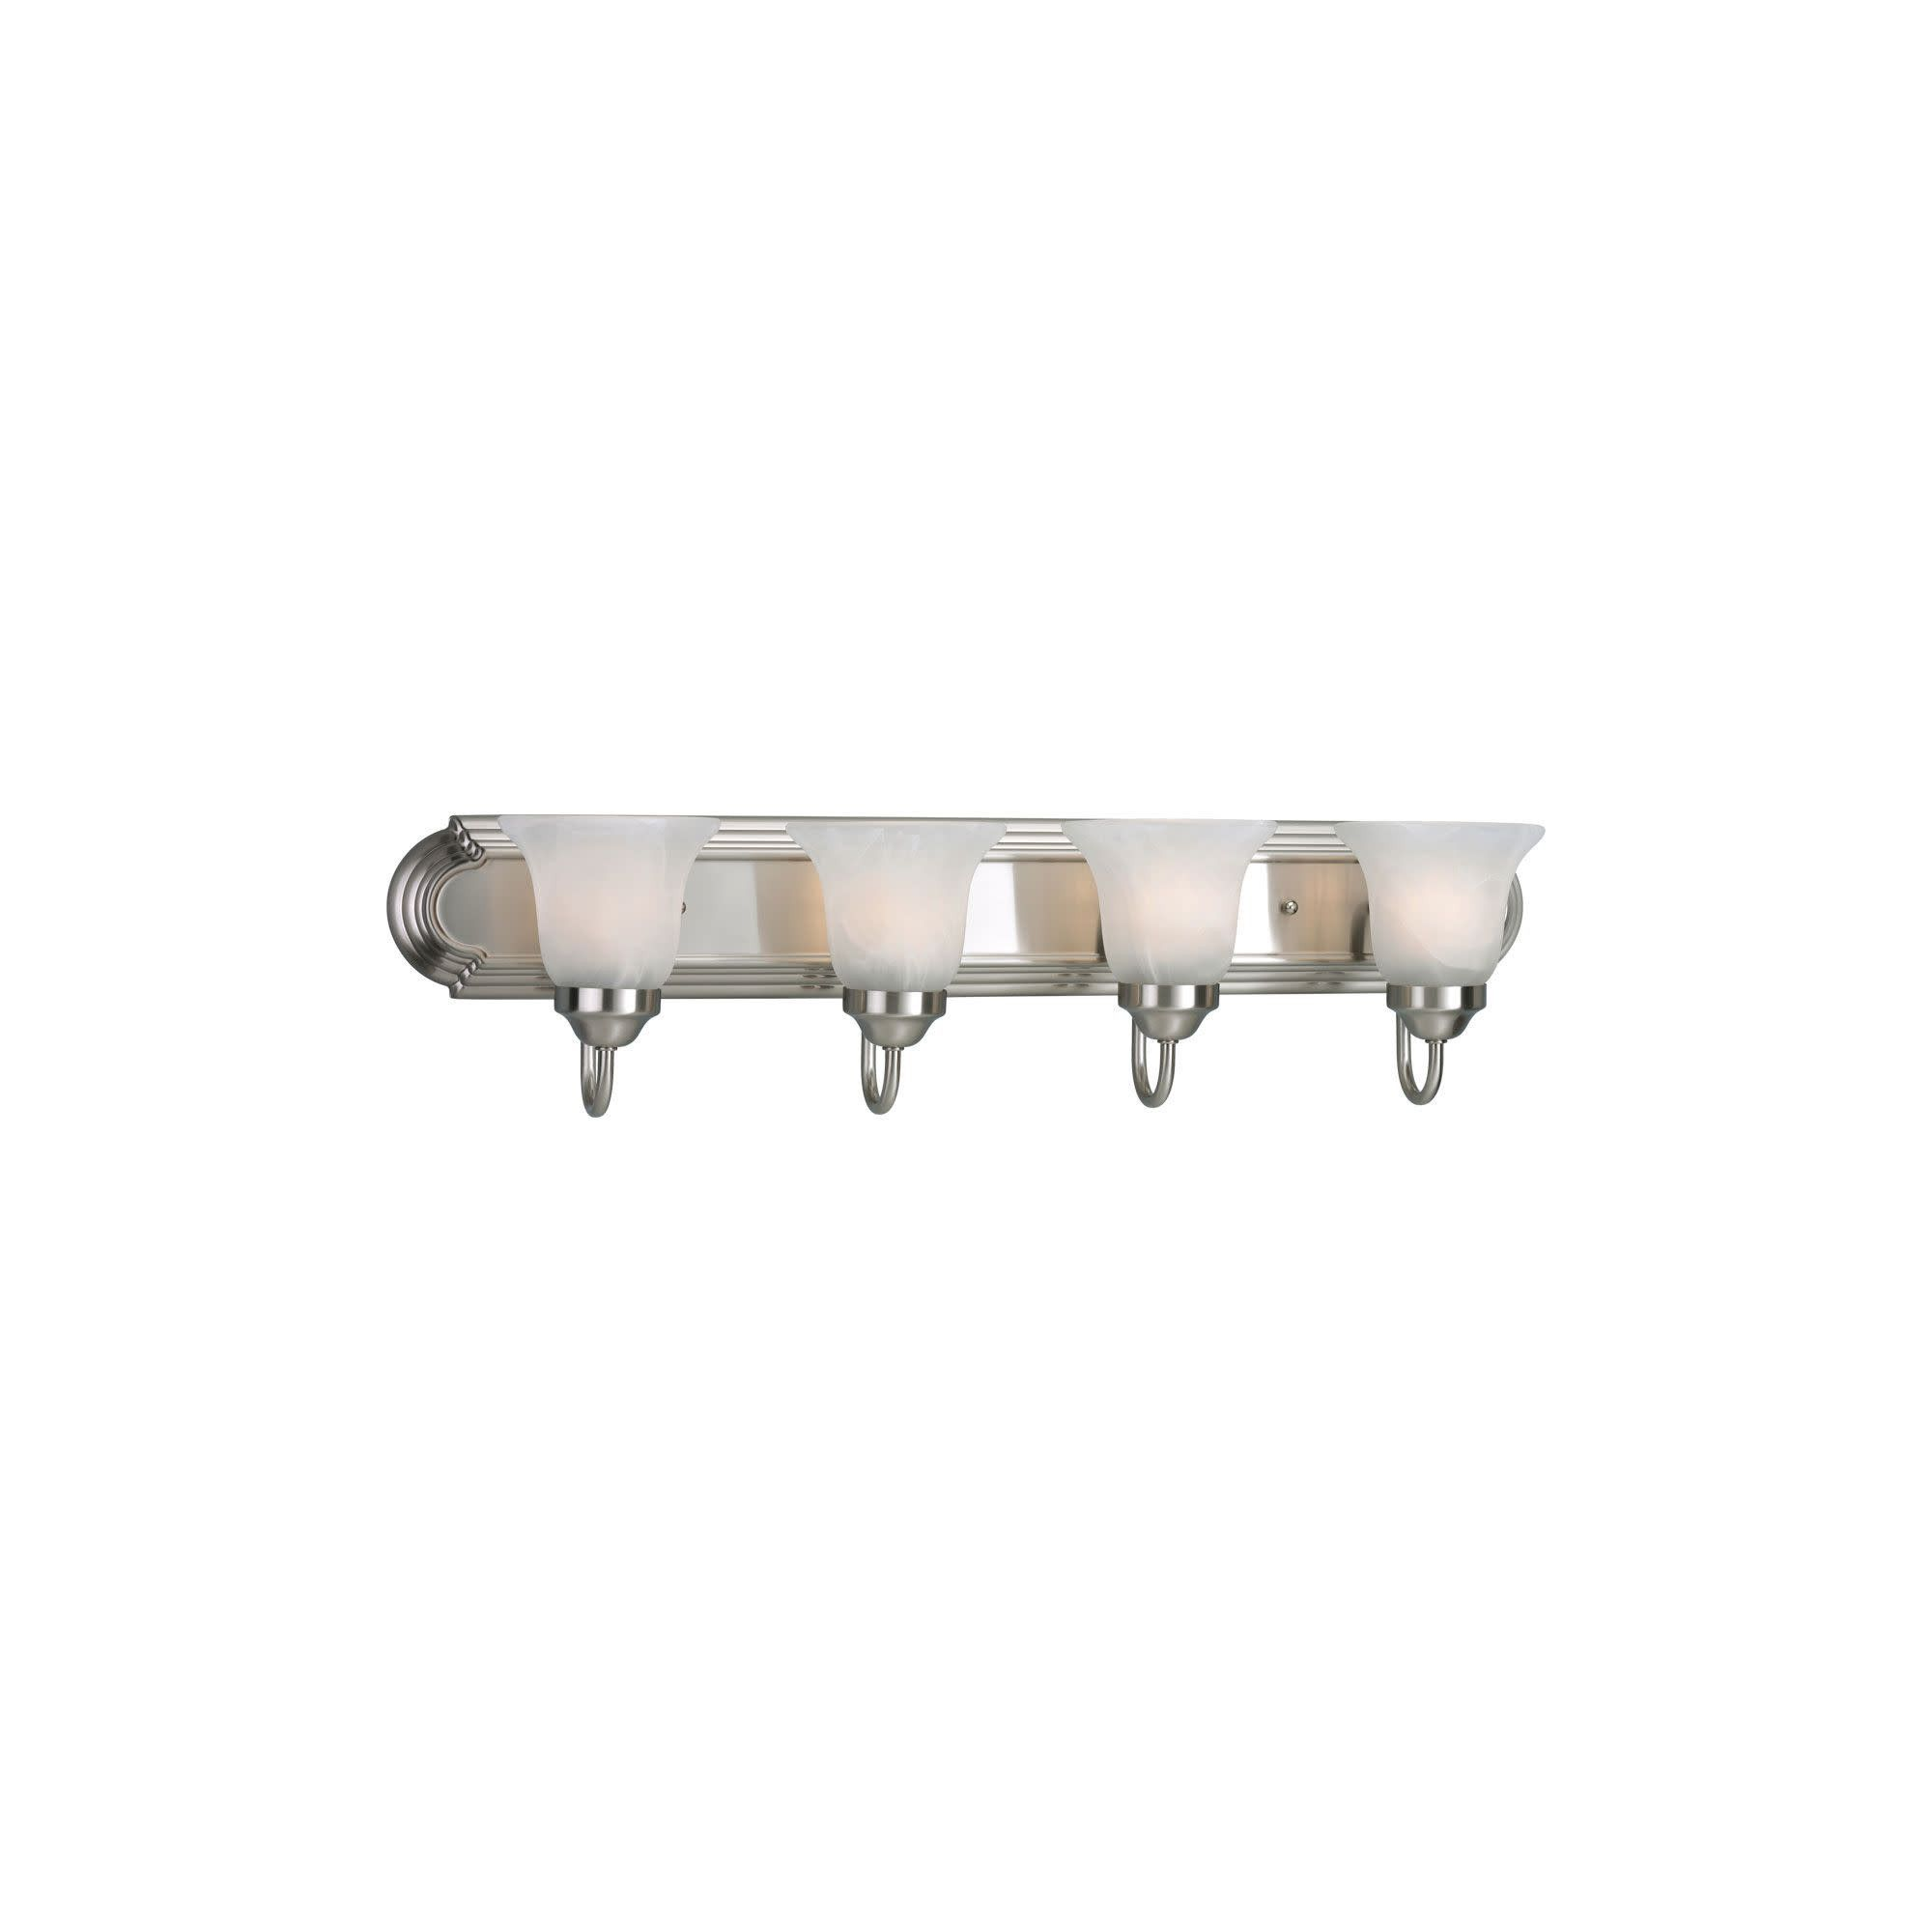 Photo of Progress Lighting P3054 Builder Bath Series Four-light bathroom mixer with etched alabaster glass shades – brushed